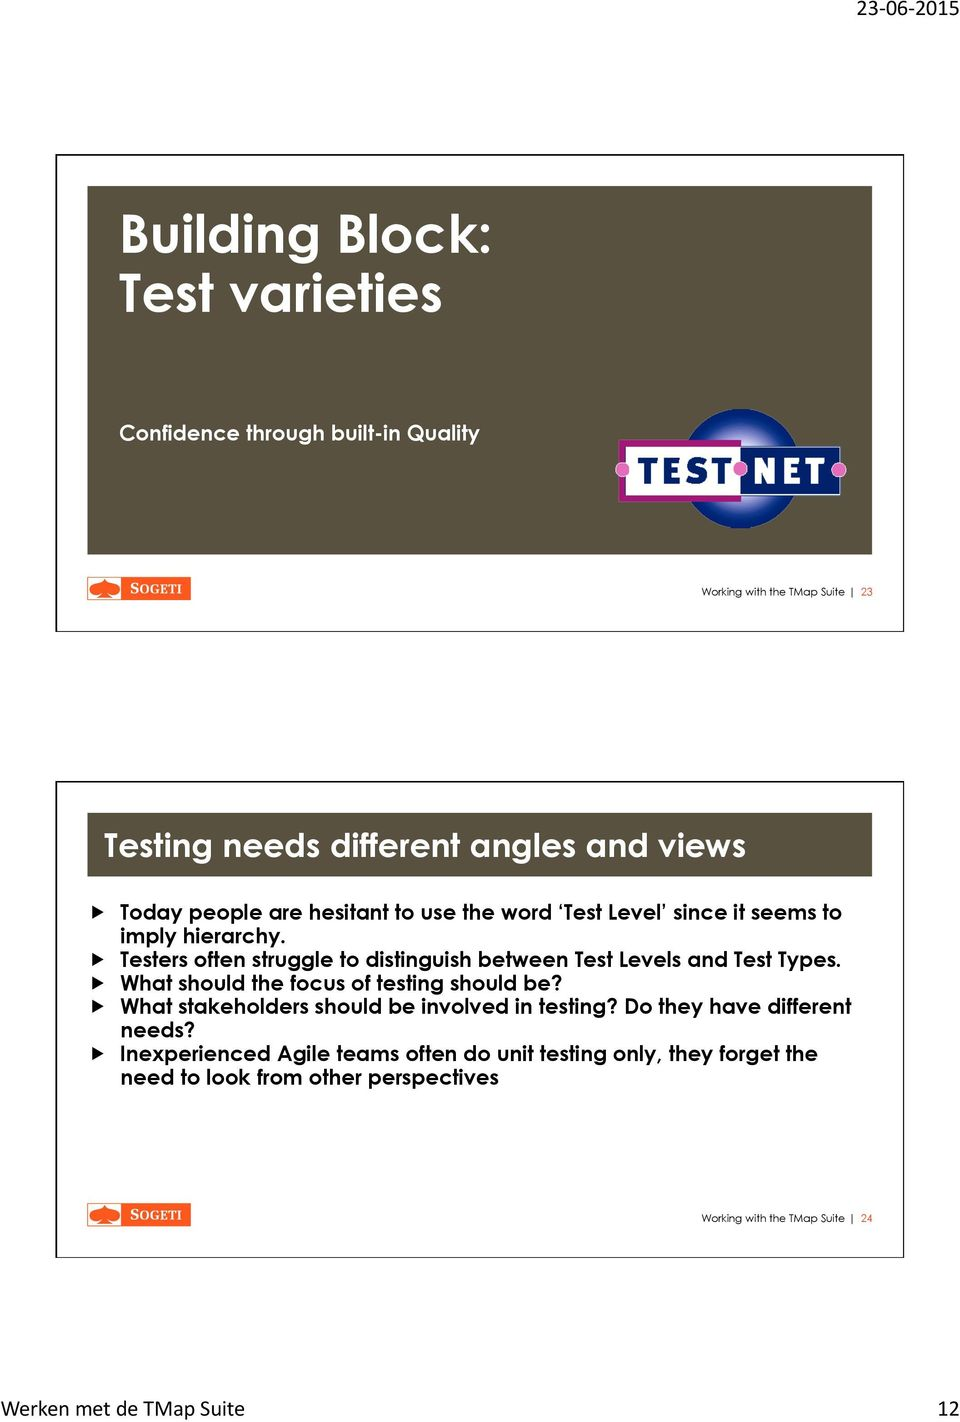 Testers often struggle to distinguish between Test Levels and Test Types. What should the focus of testing should be?